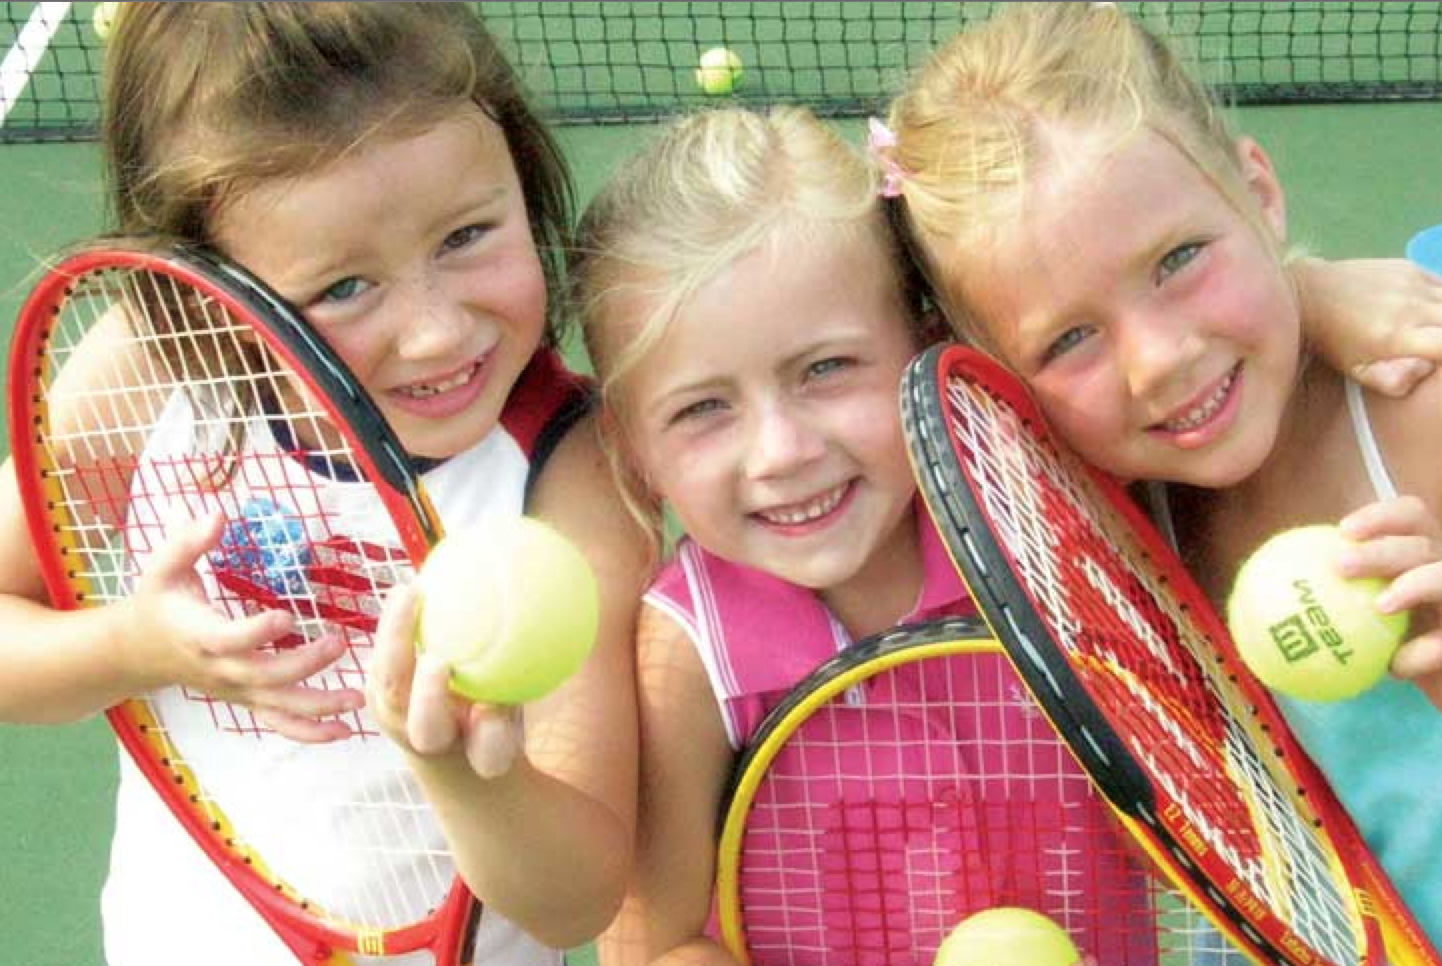 Purchasing Power Promo Code >> Hopewell Tennis and Swim Center – NEW DISCOUNT DATE! Save ...